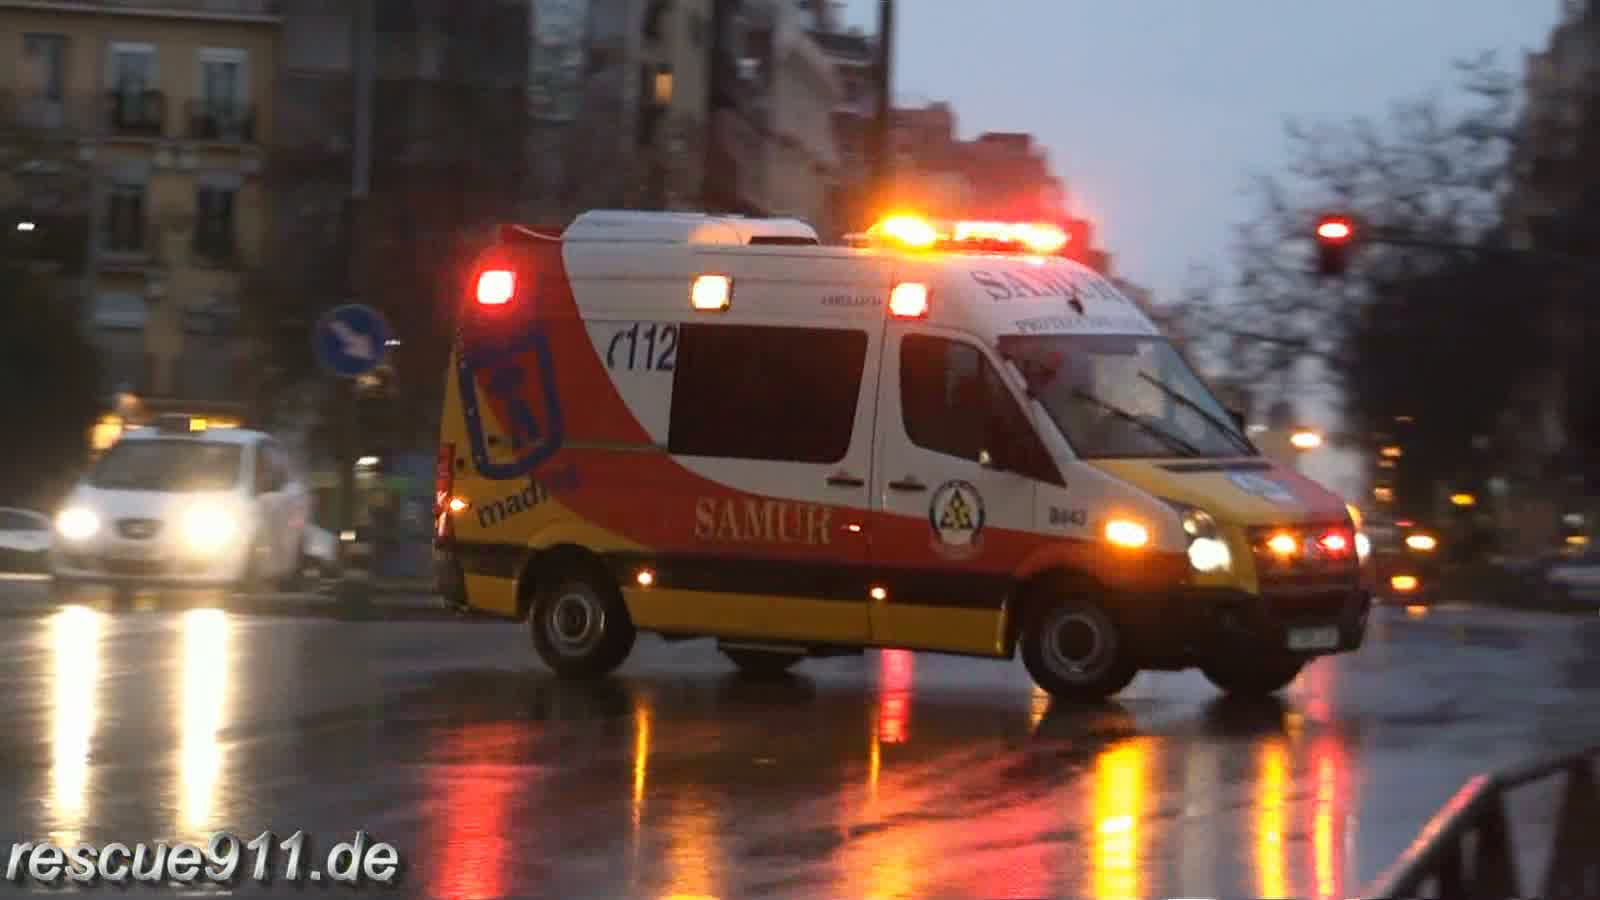 Ambulancia SAMUR Madrid (collection) (stream)